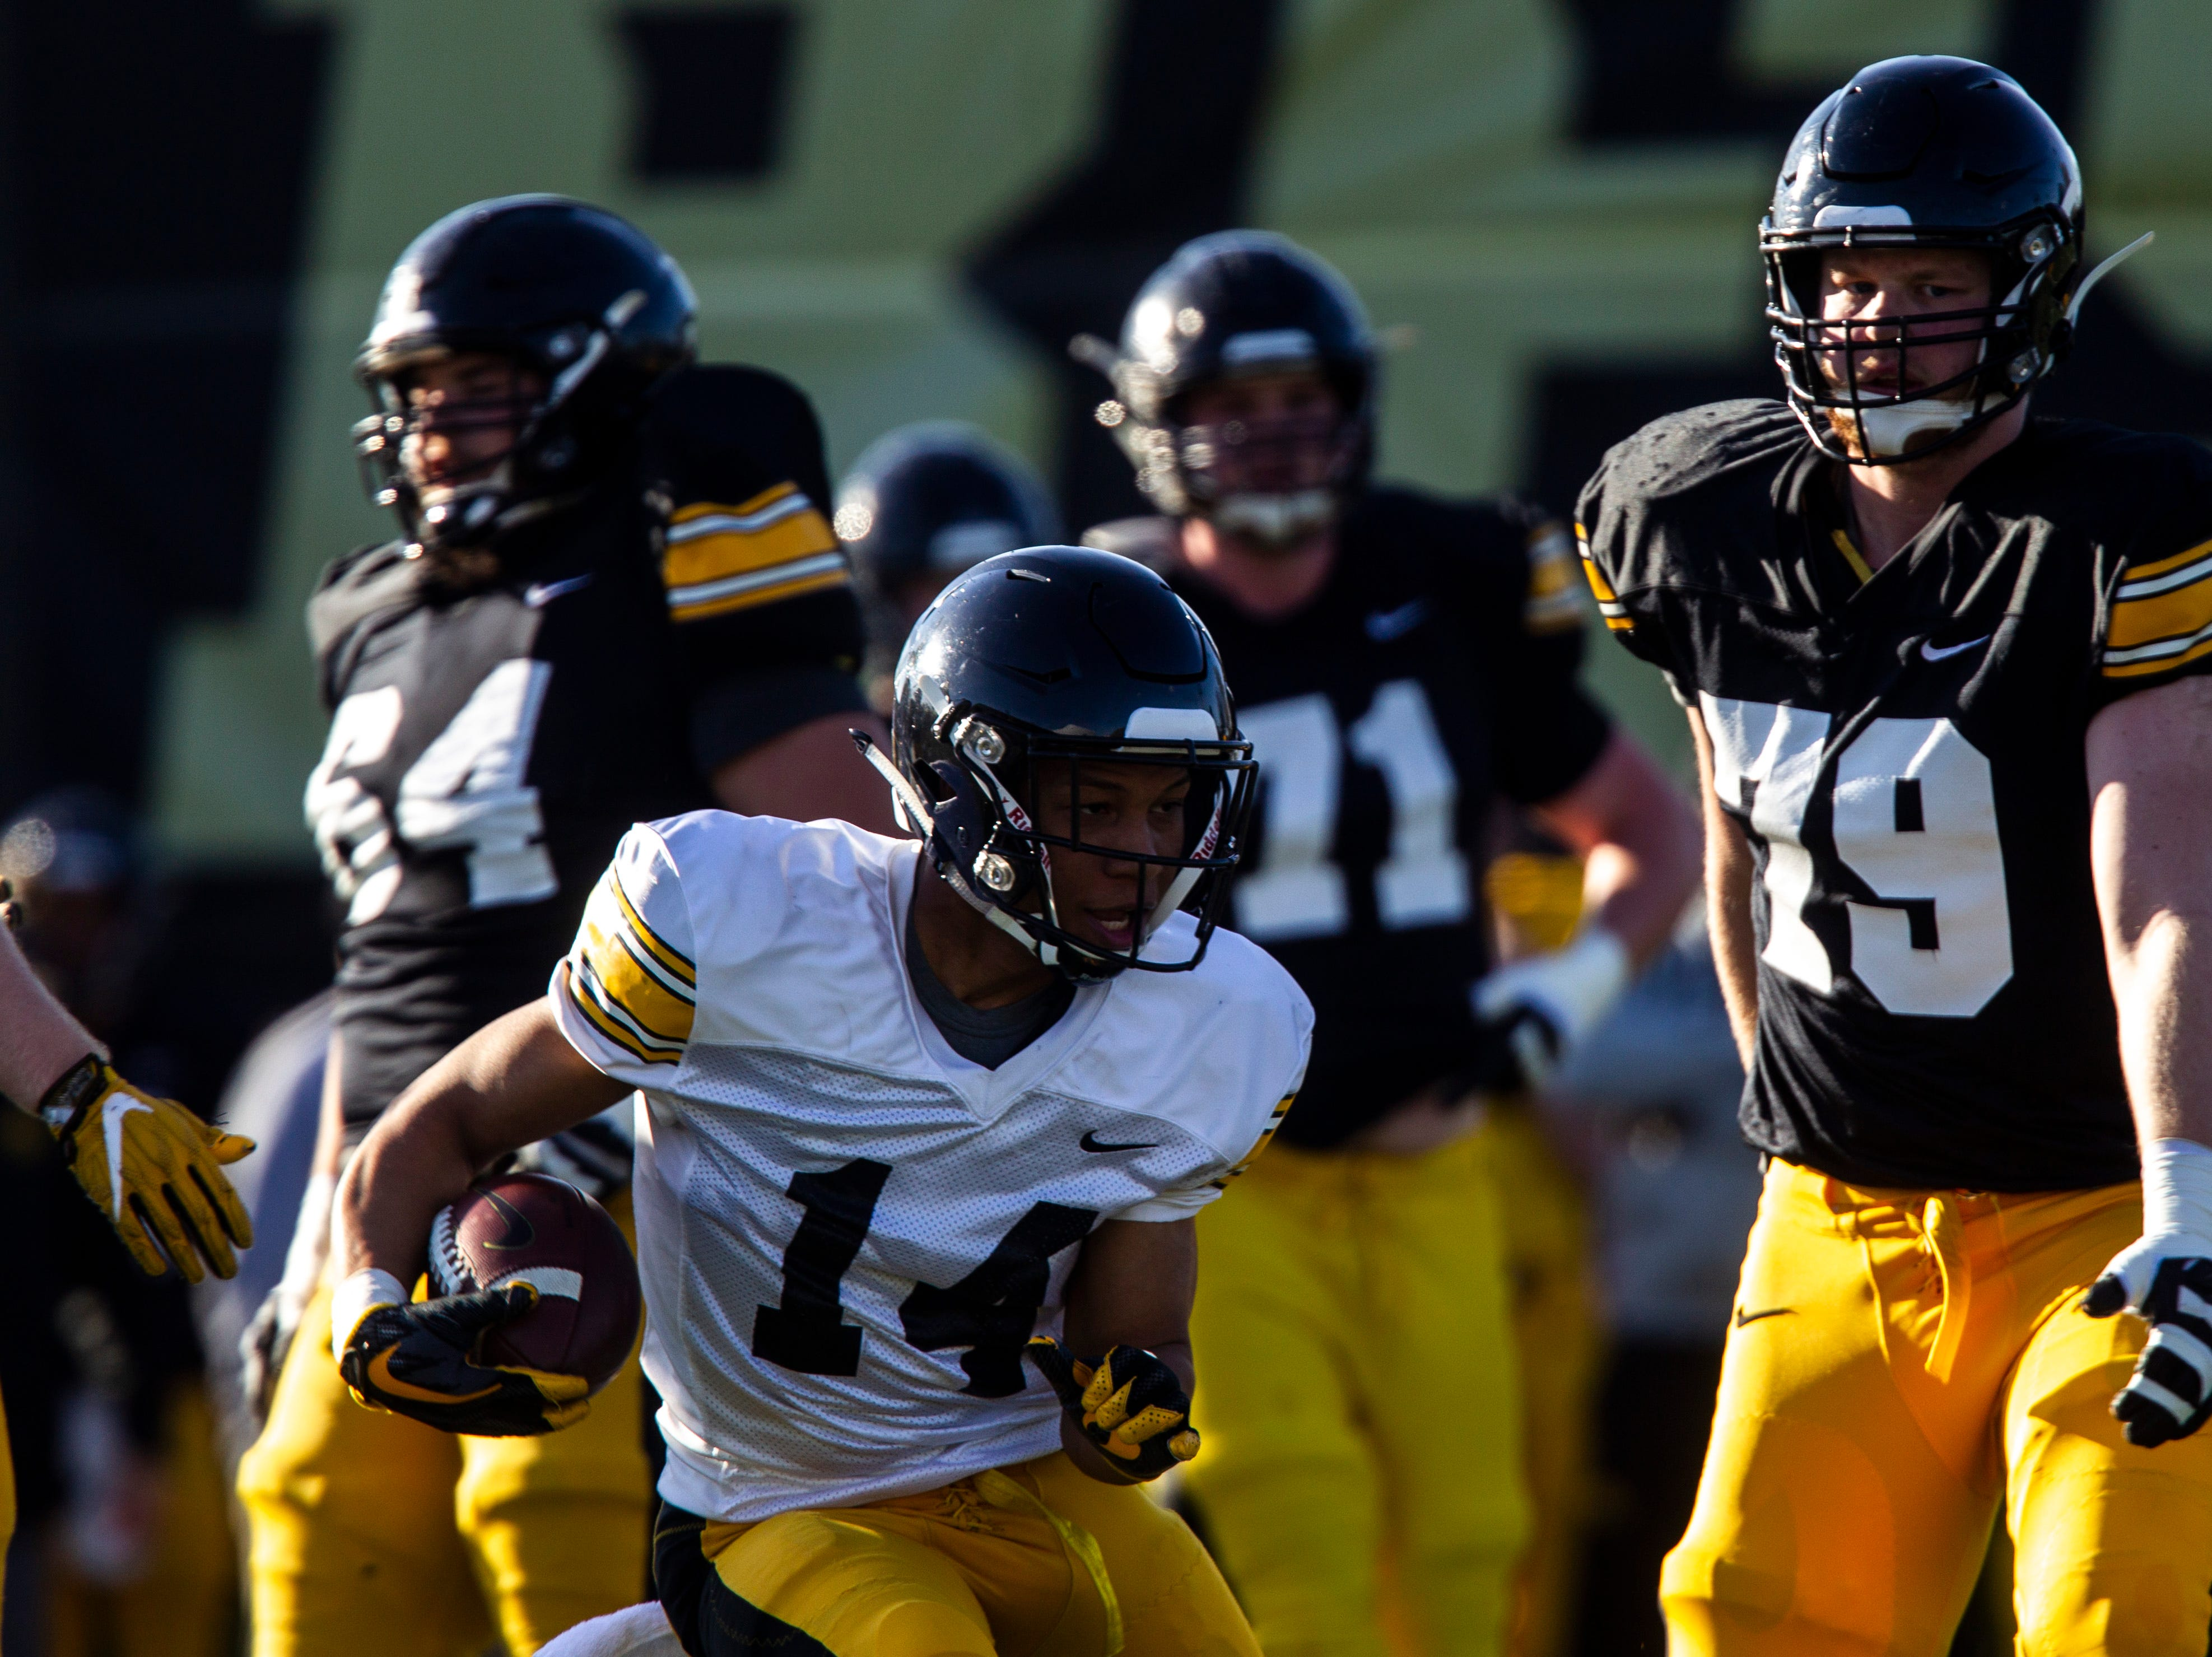 Iowa defensive back Daraun McKinney (14) returns an intercepted pass during the final spring football practice, Friday, April 26, 2019, at the University of Iowa outdoor practice facility in Iowa City, Iowa.